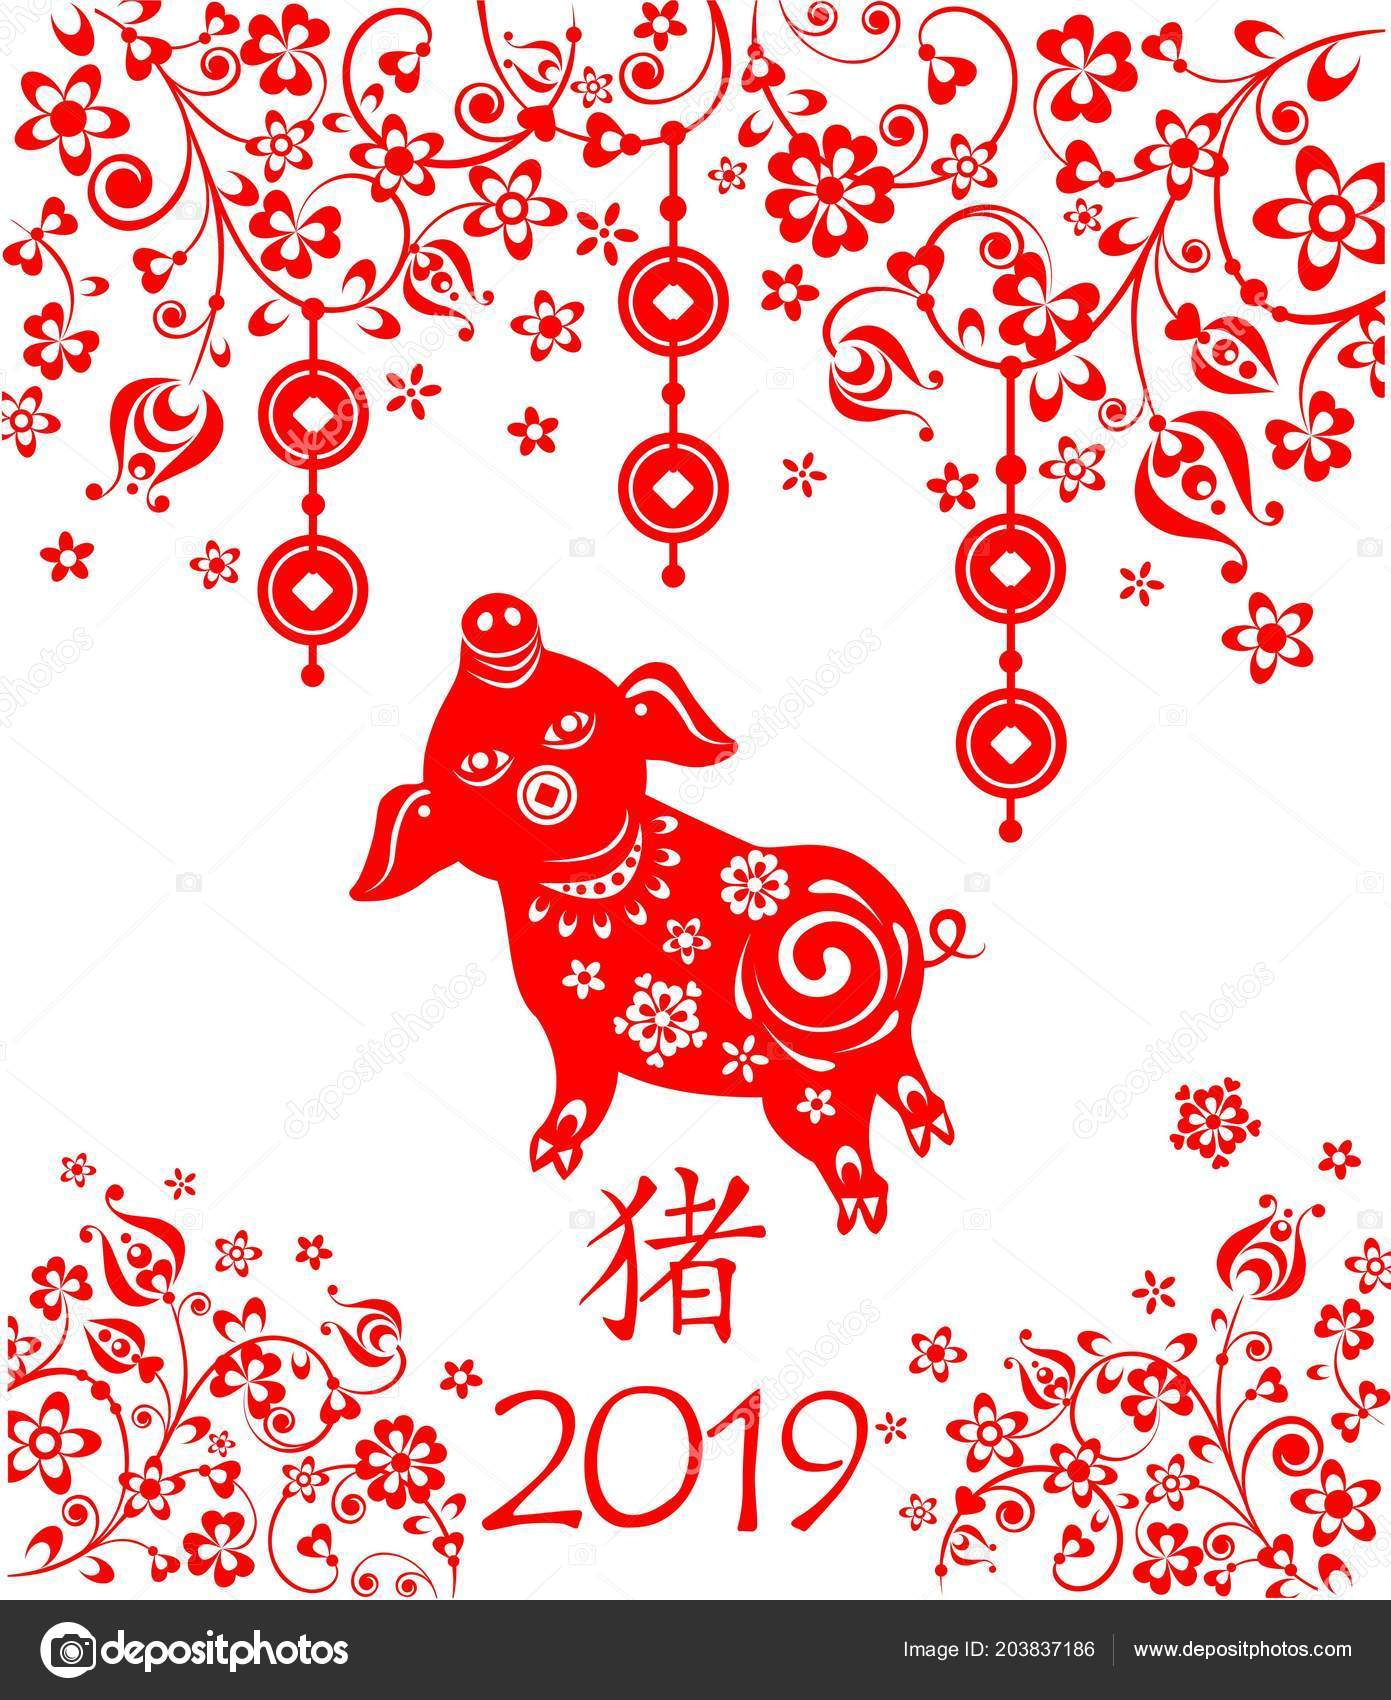 Greeting Decorative Card 2019 Chinese New Year Funny Red Piggy